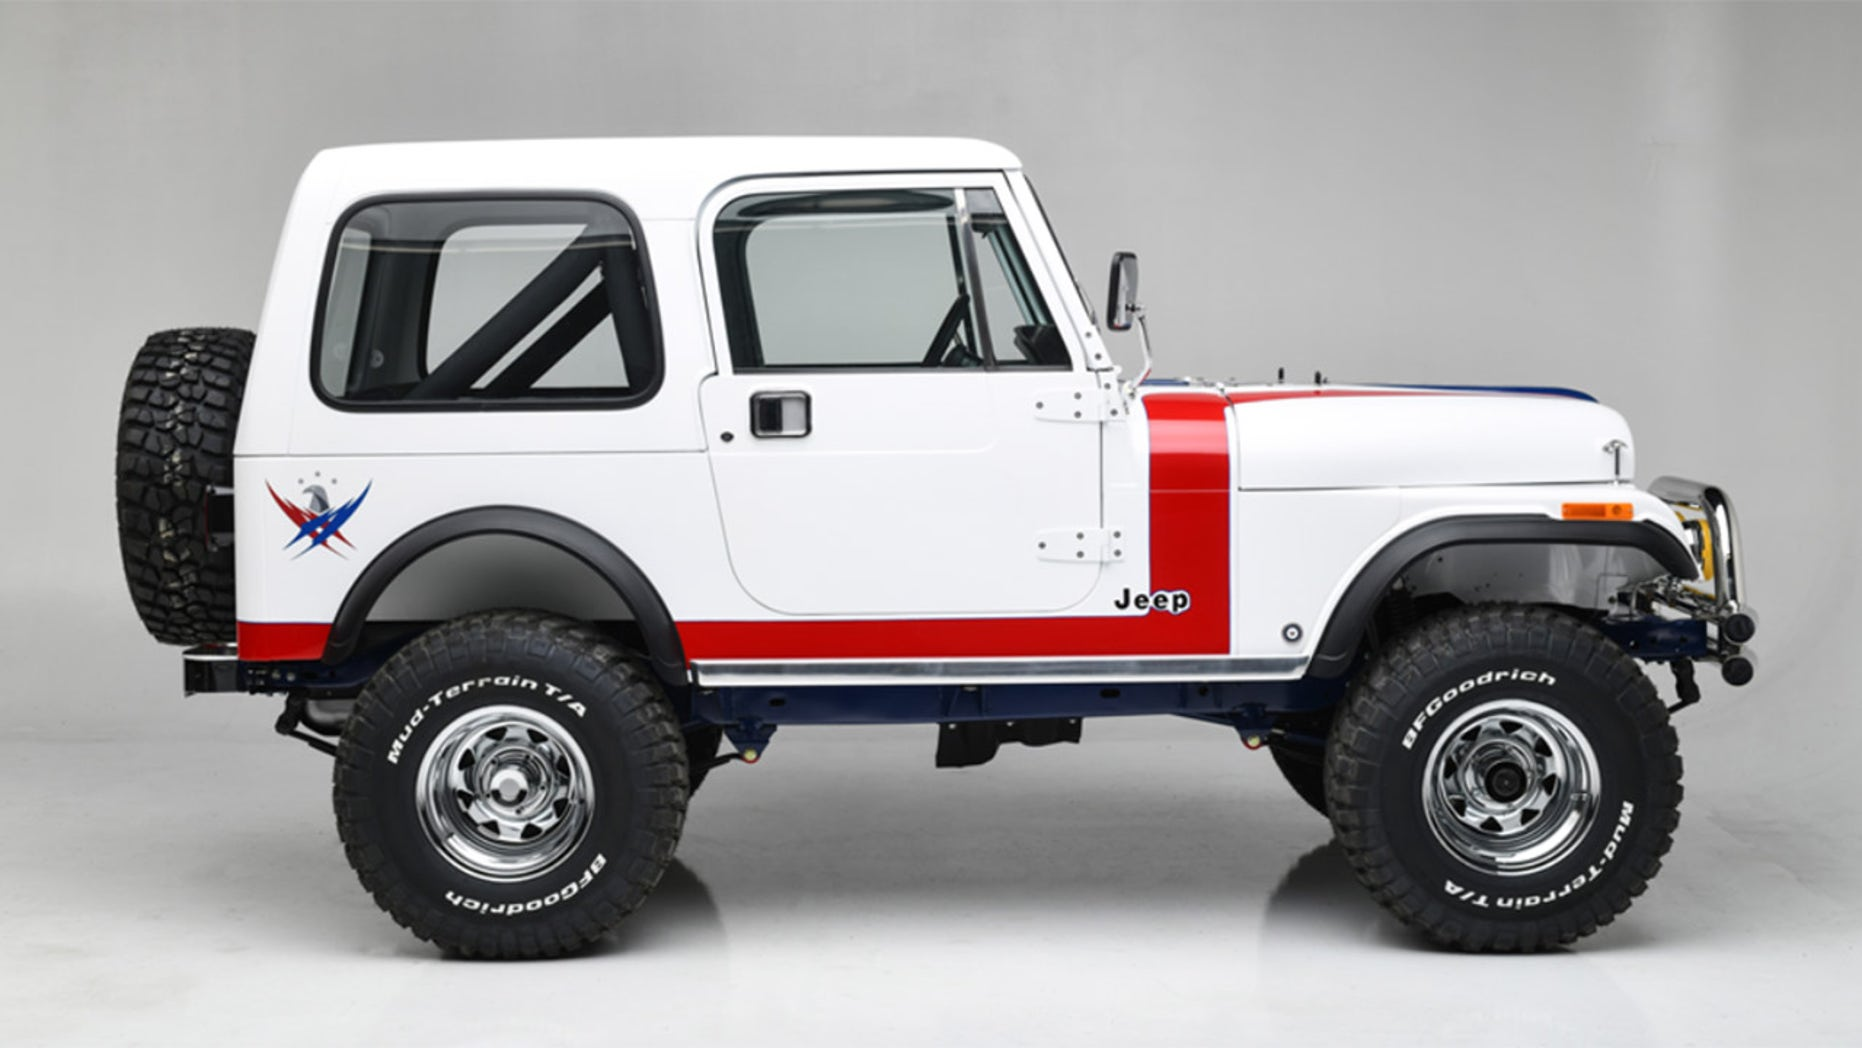 1981 Jeep CJ7 side view